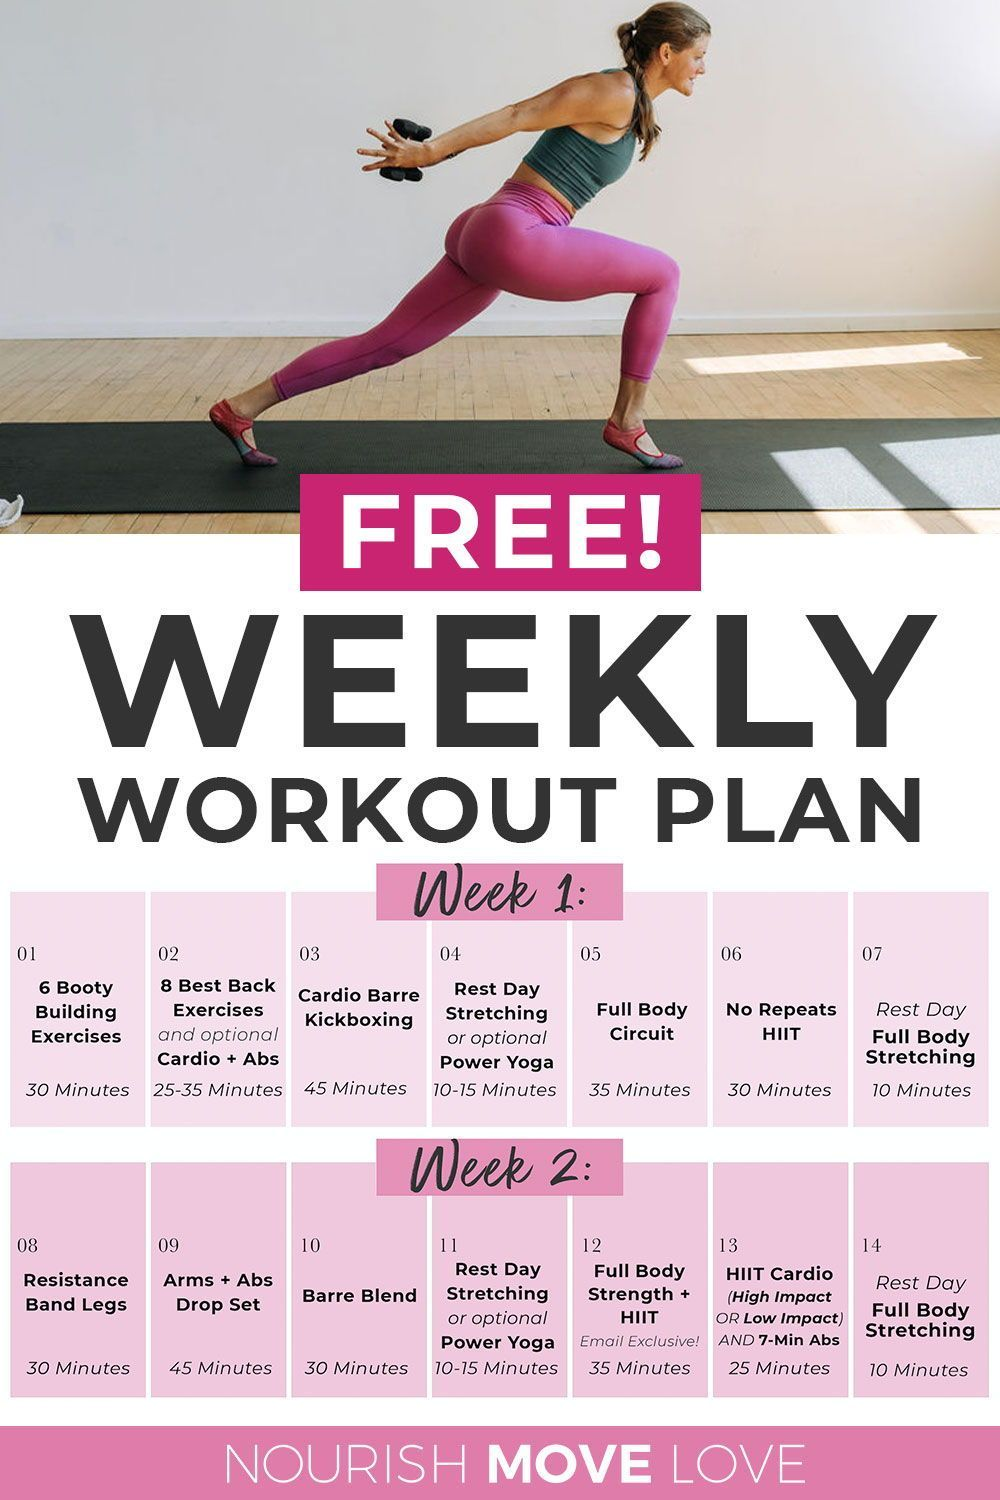 Free 14 Day Full Body Workout Plan For Women Nourish Move Love Full Body Workout Plan Workout Plan Workout